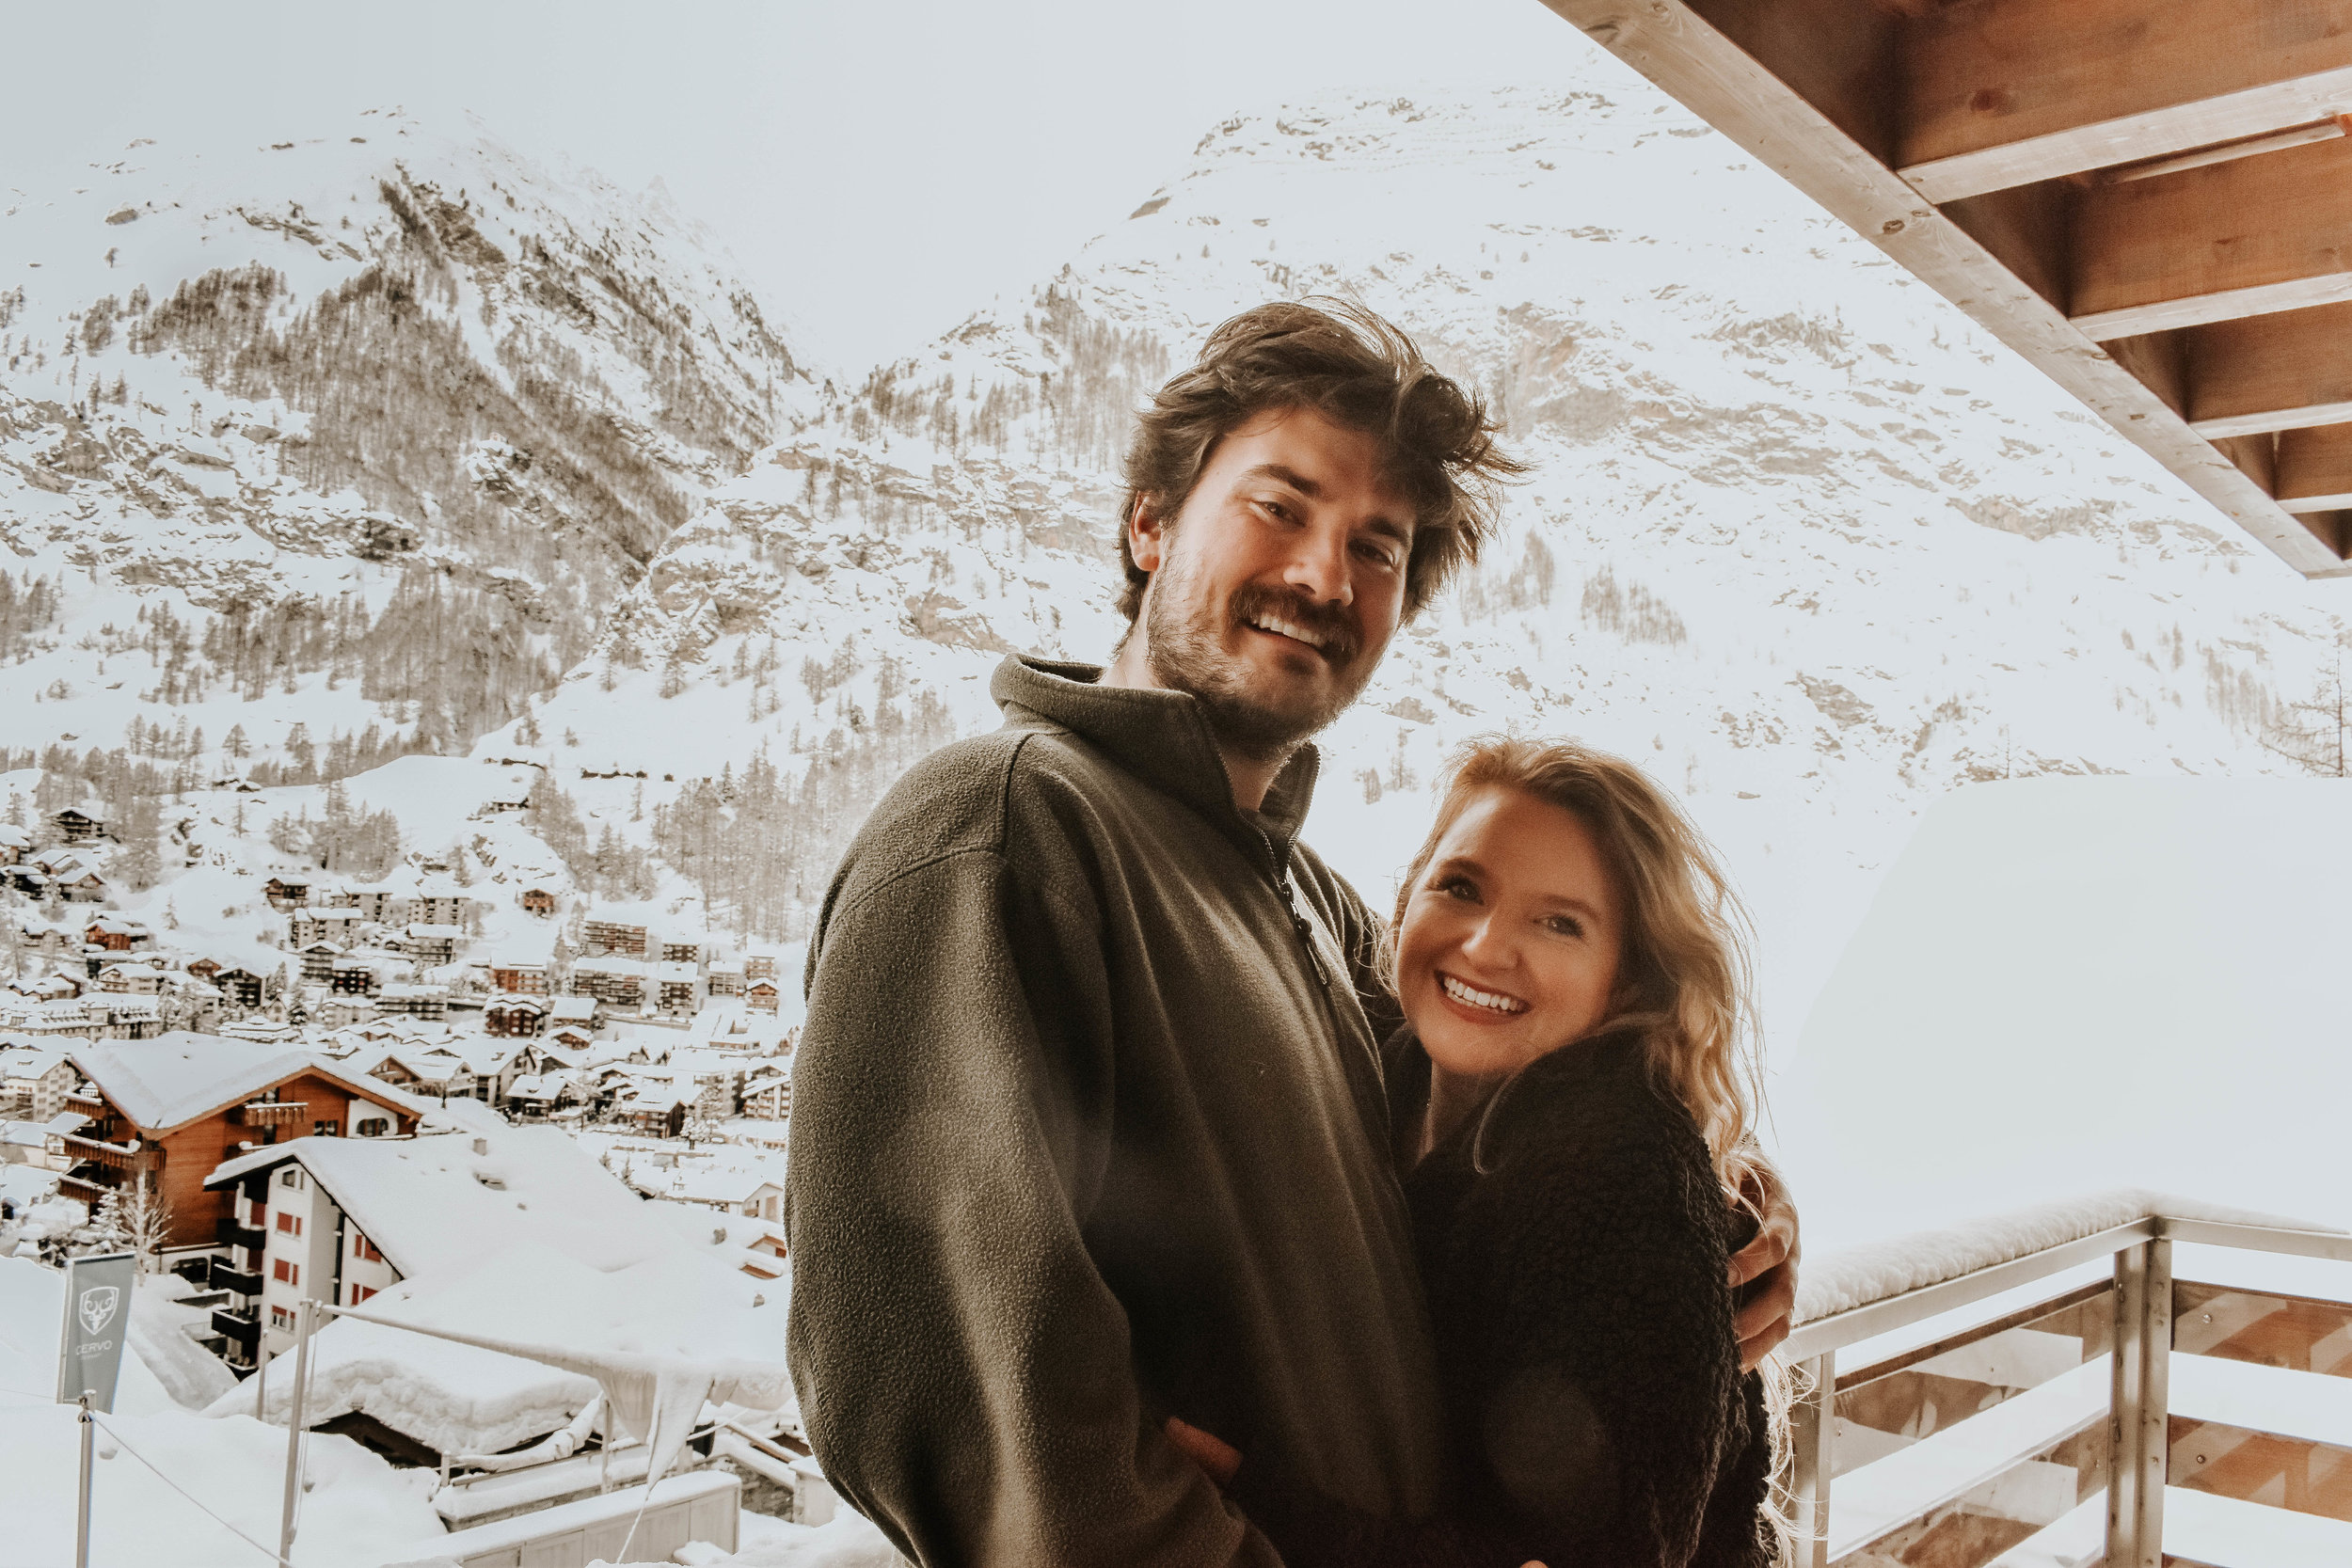 Helene and her love keeping warm in snowy Zermatt, Switzerland